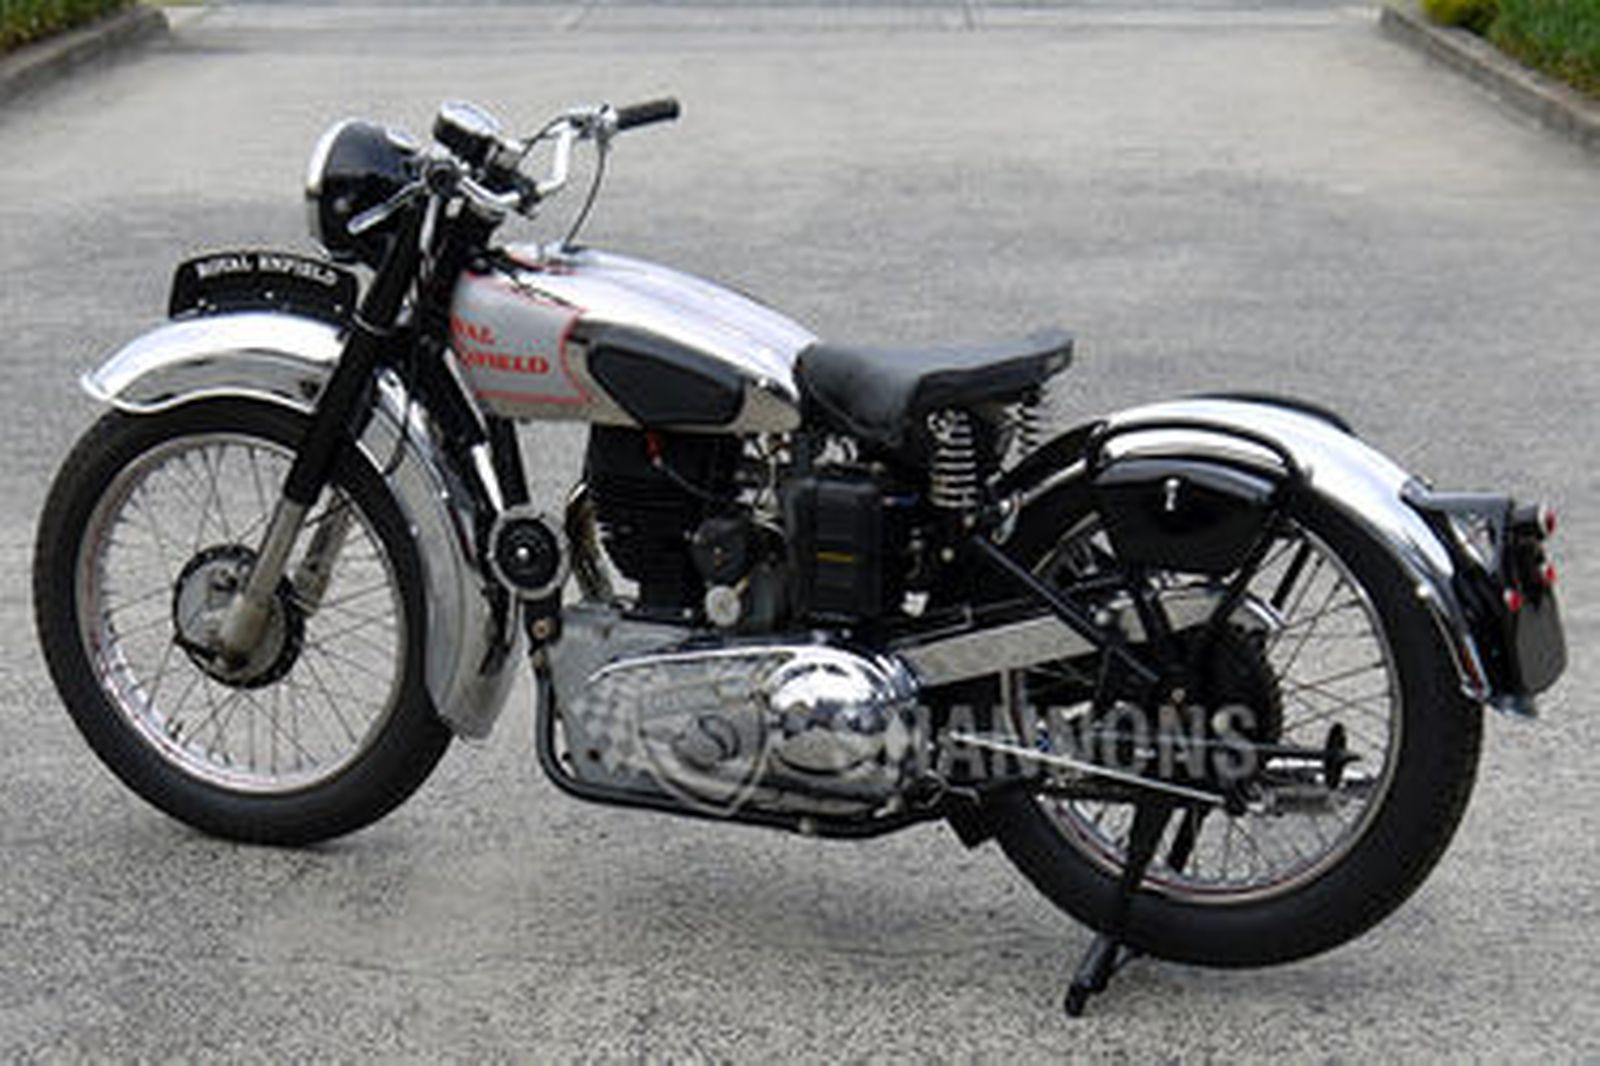 royal enfield j model 500cc solo motorcycle auctions lot 40 shannons. Black Bedroom Furniture Sets. Home Design Ideas